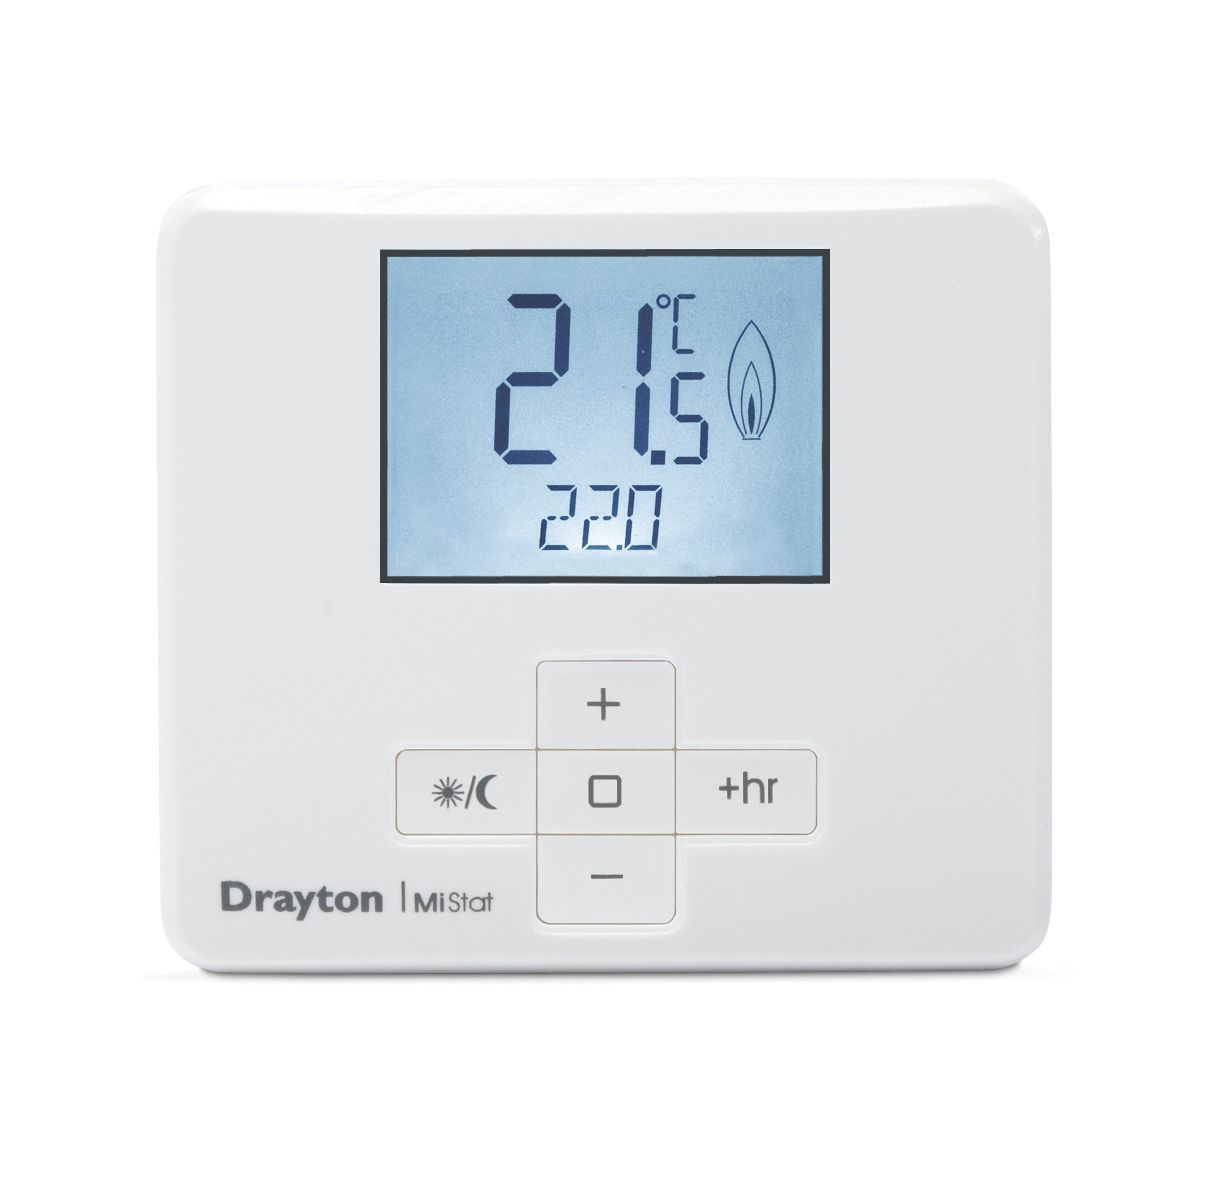 drayton thermostat departments diy at b q. Black Bedroom Furniture Sets. Home Design Ideas